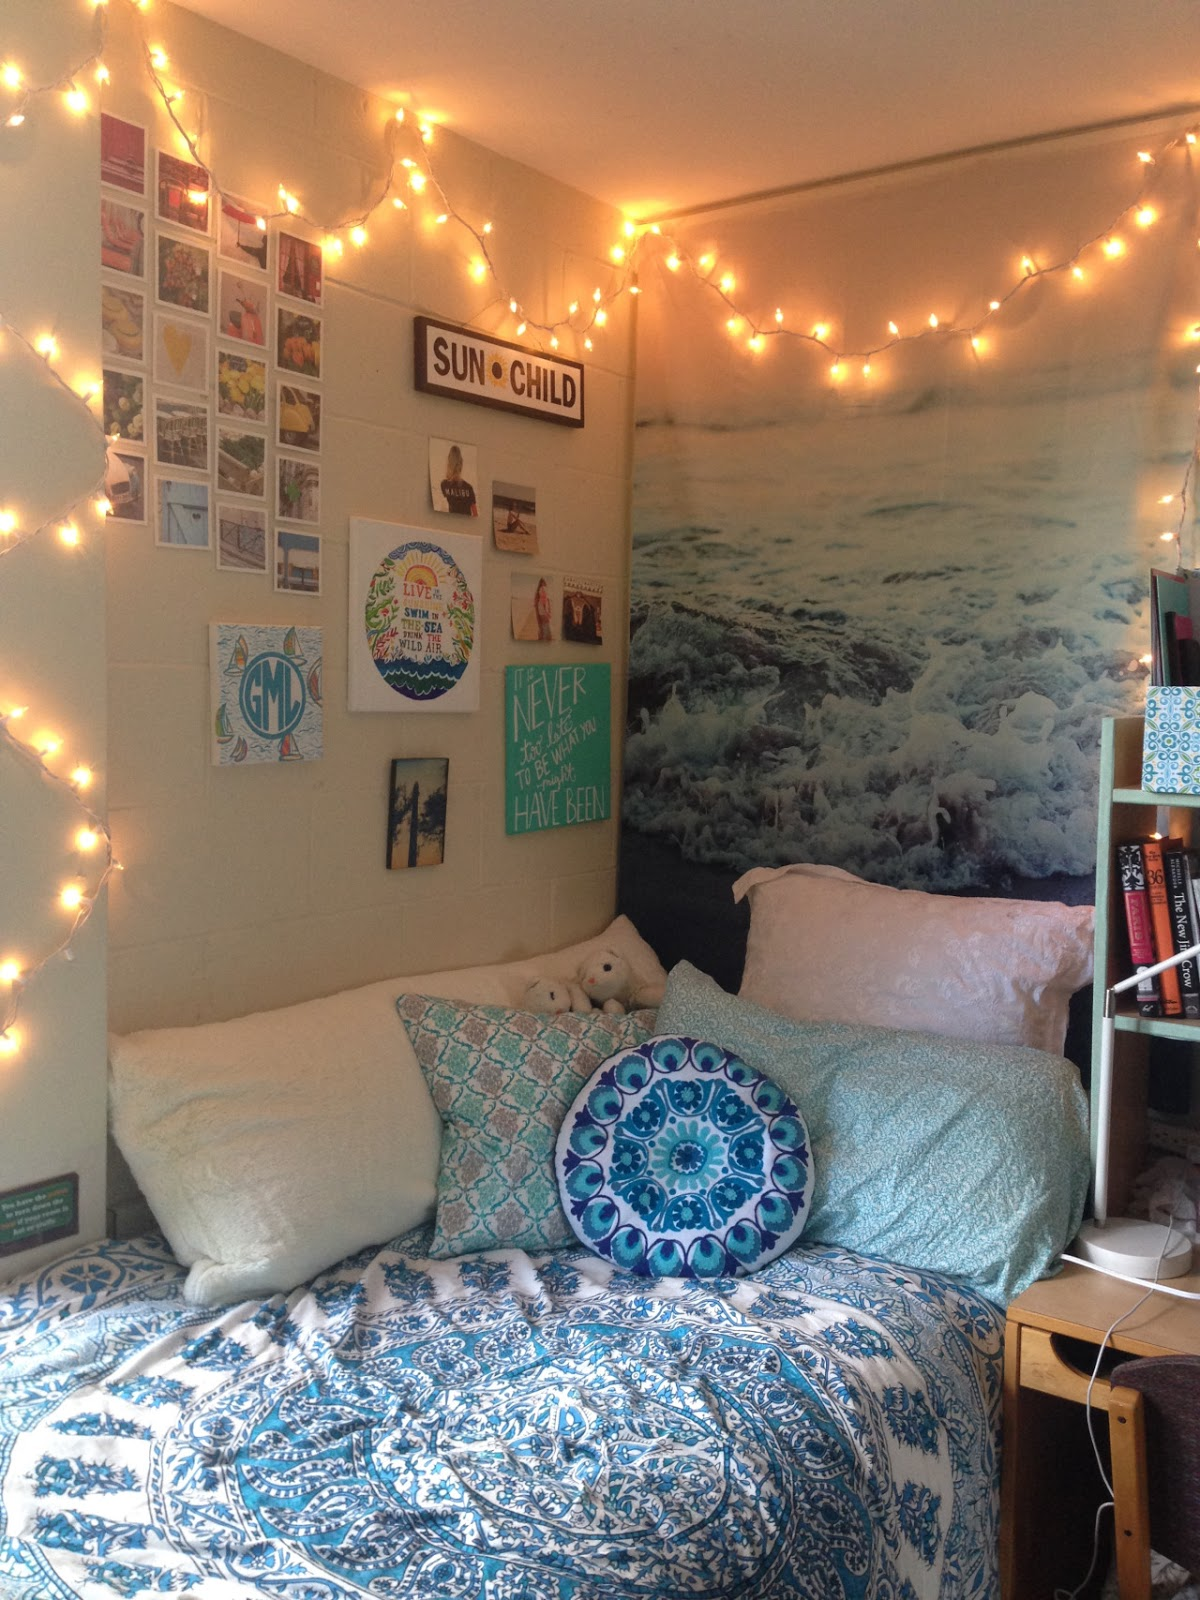 Cottage and vine dorm room inspiration - Cute things for girls room ...